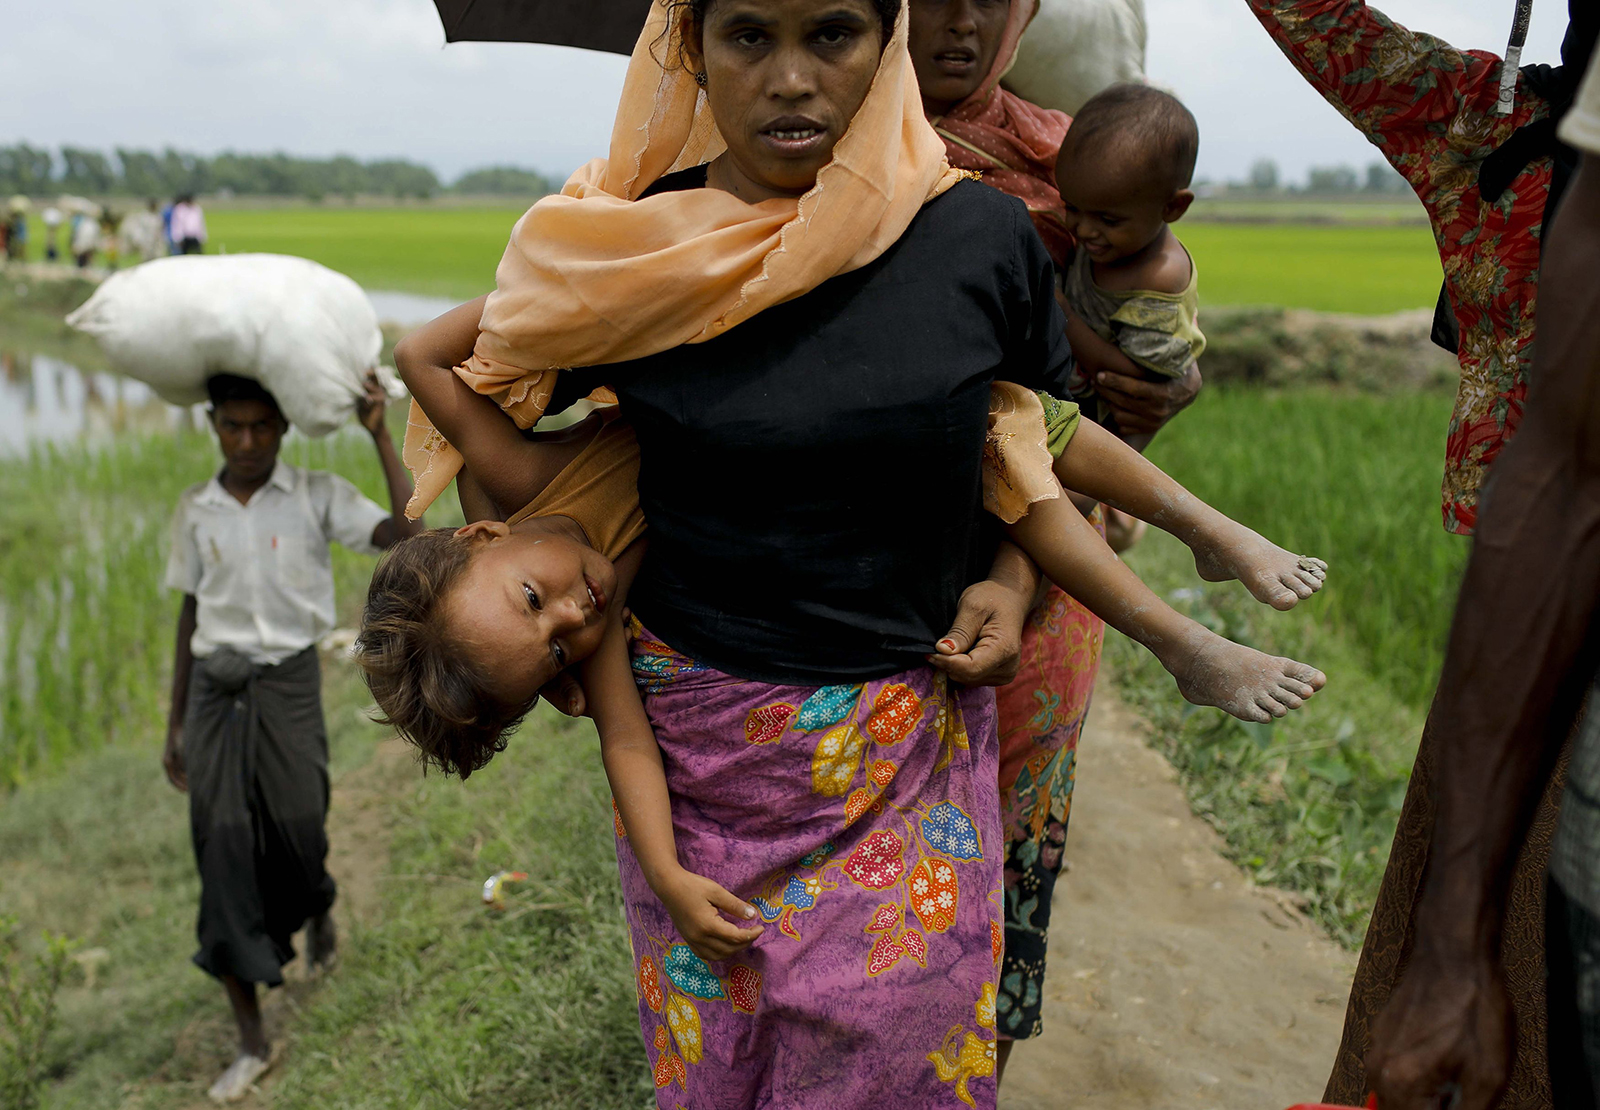 A Rohingya Muslim refugee carries a child as they arrive from Myanmar through Lomba Beel after crossing the Naf river, in the Bangladeshi town of Teknaf on September 7, 2017 - AFP